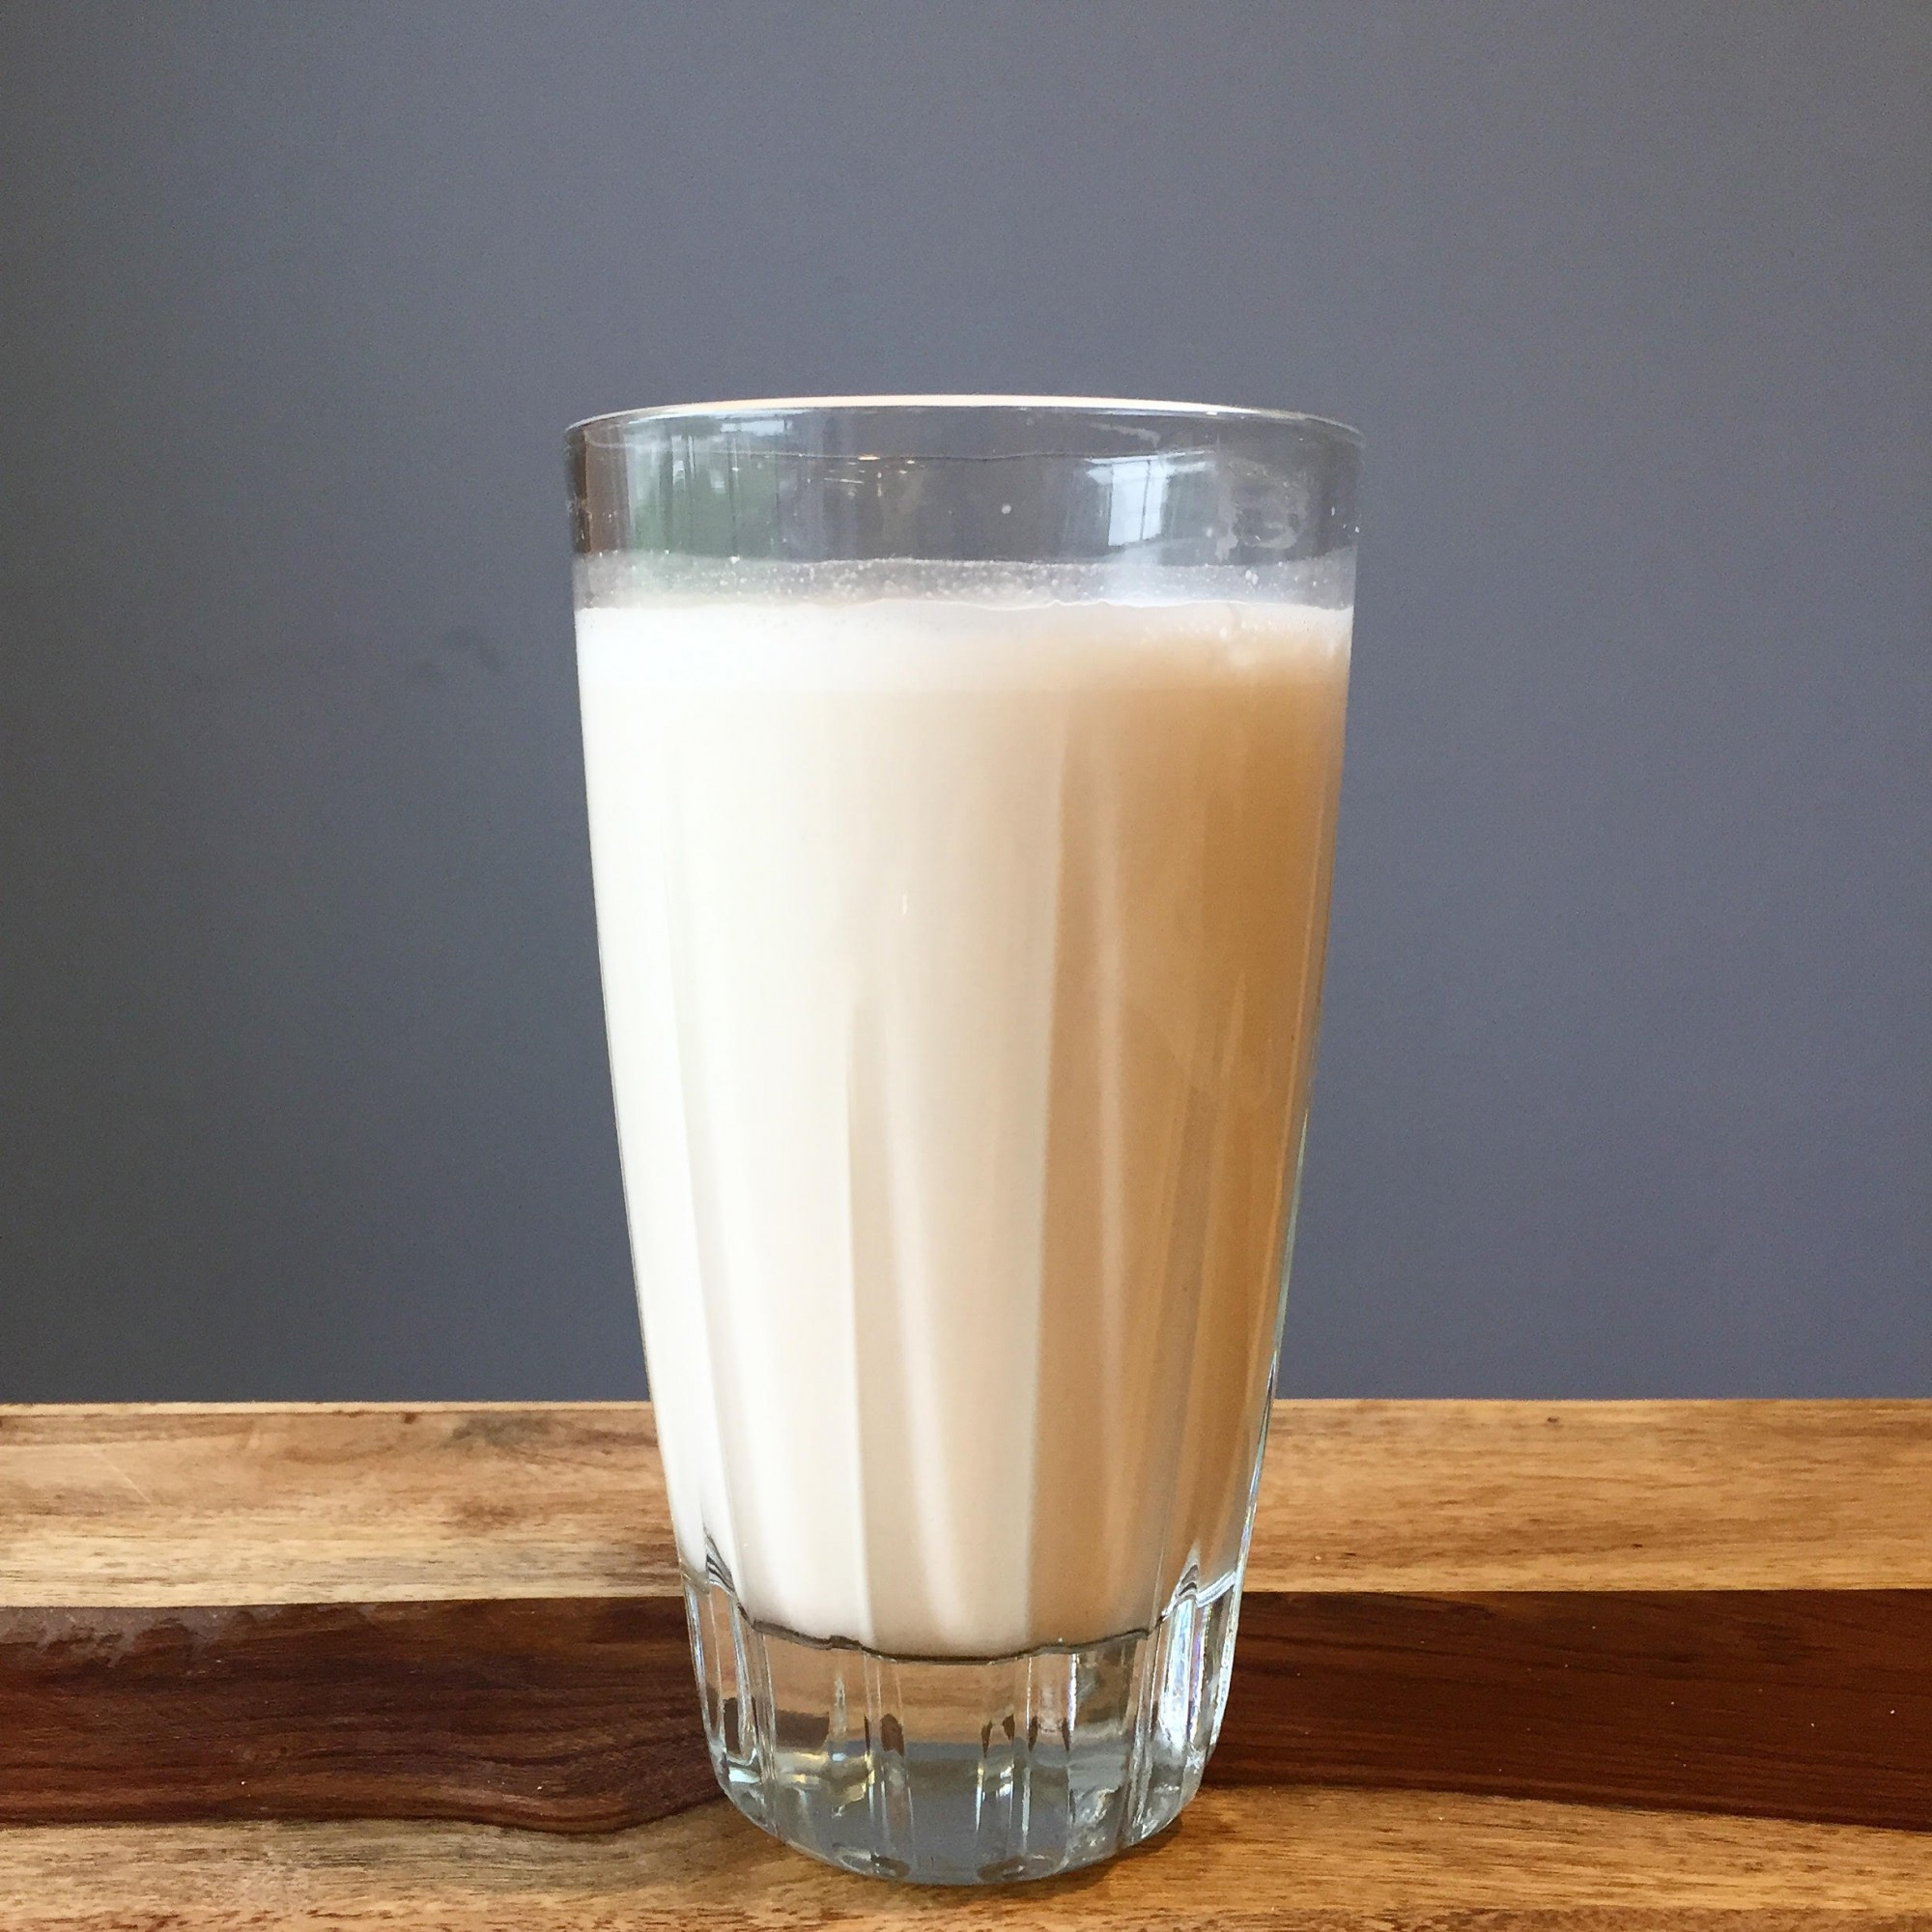 Homemade Creamy Almond Milk Recipe